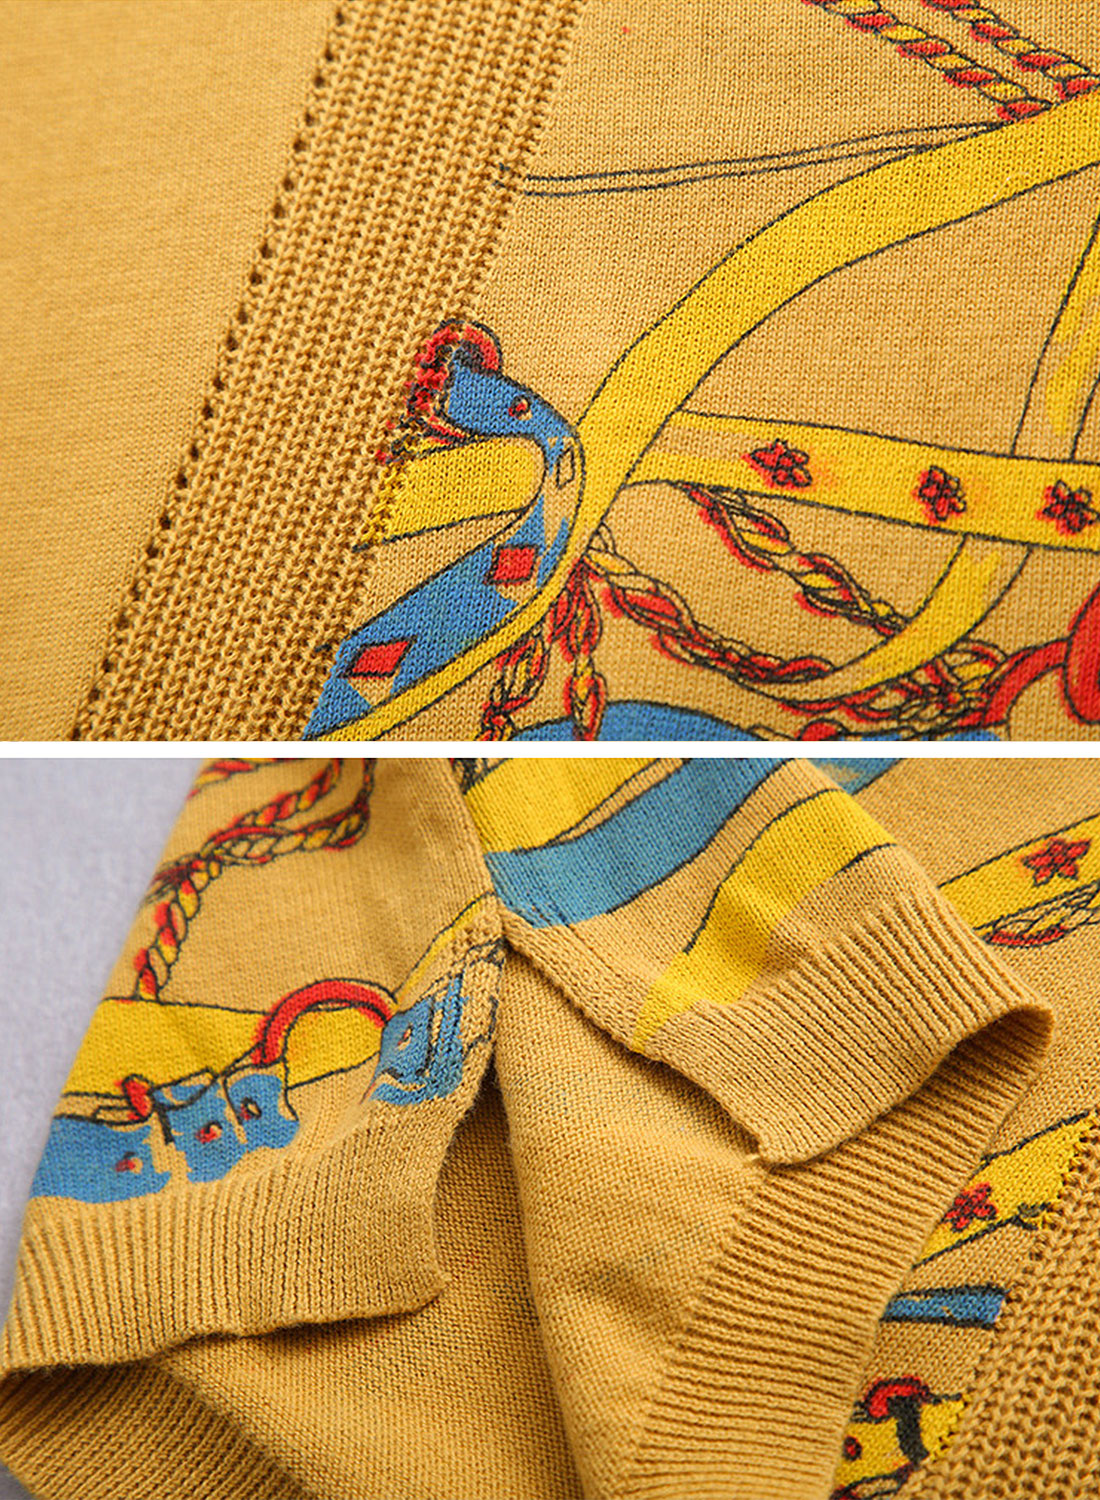 Stitching Sweaters with Side Printing Details 3